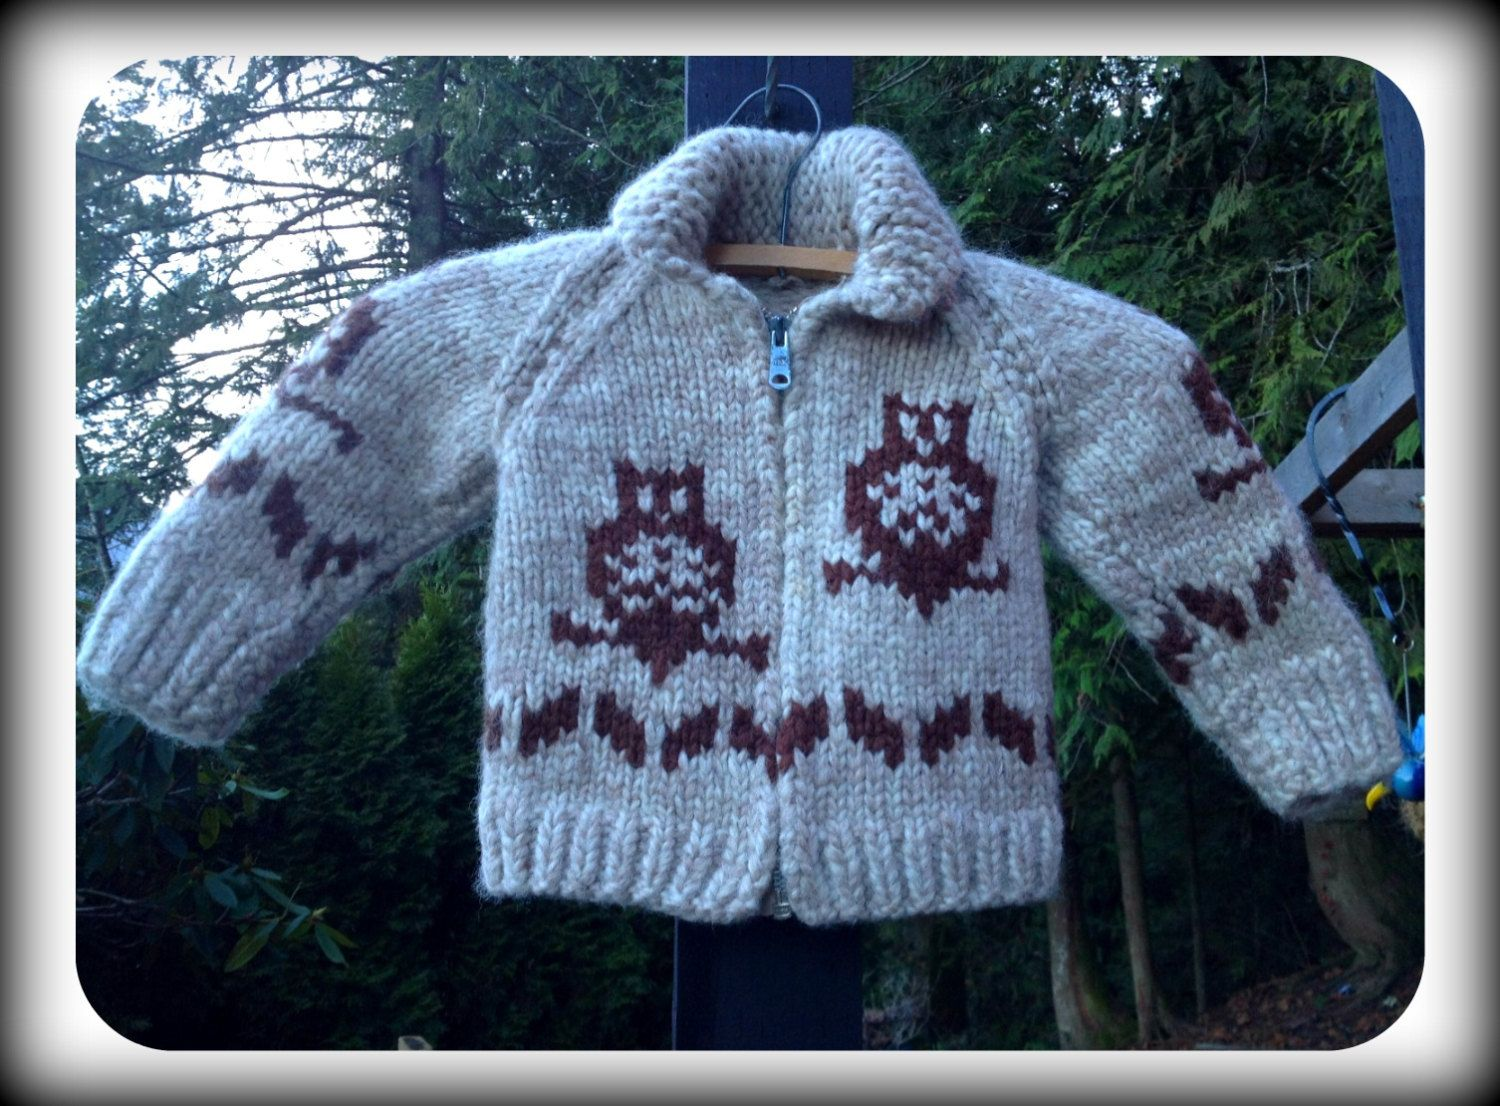 Groovy Owl Wool Cowichan Sweater For Baby Mary Maxim